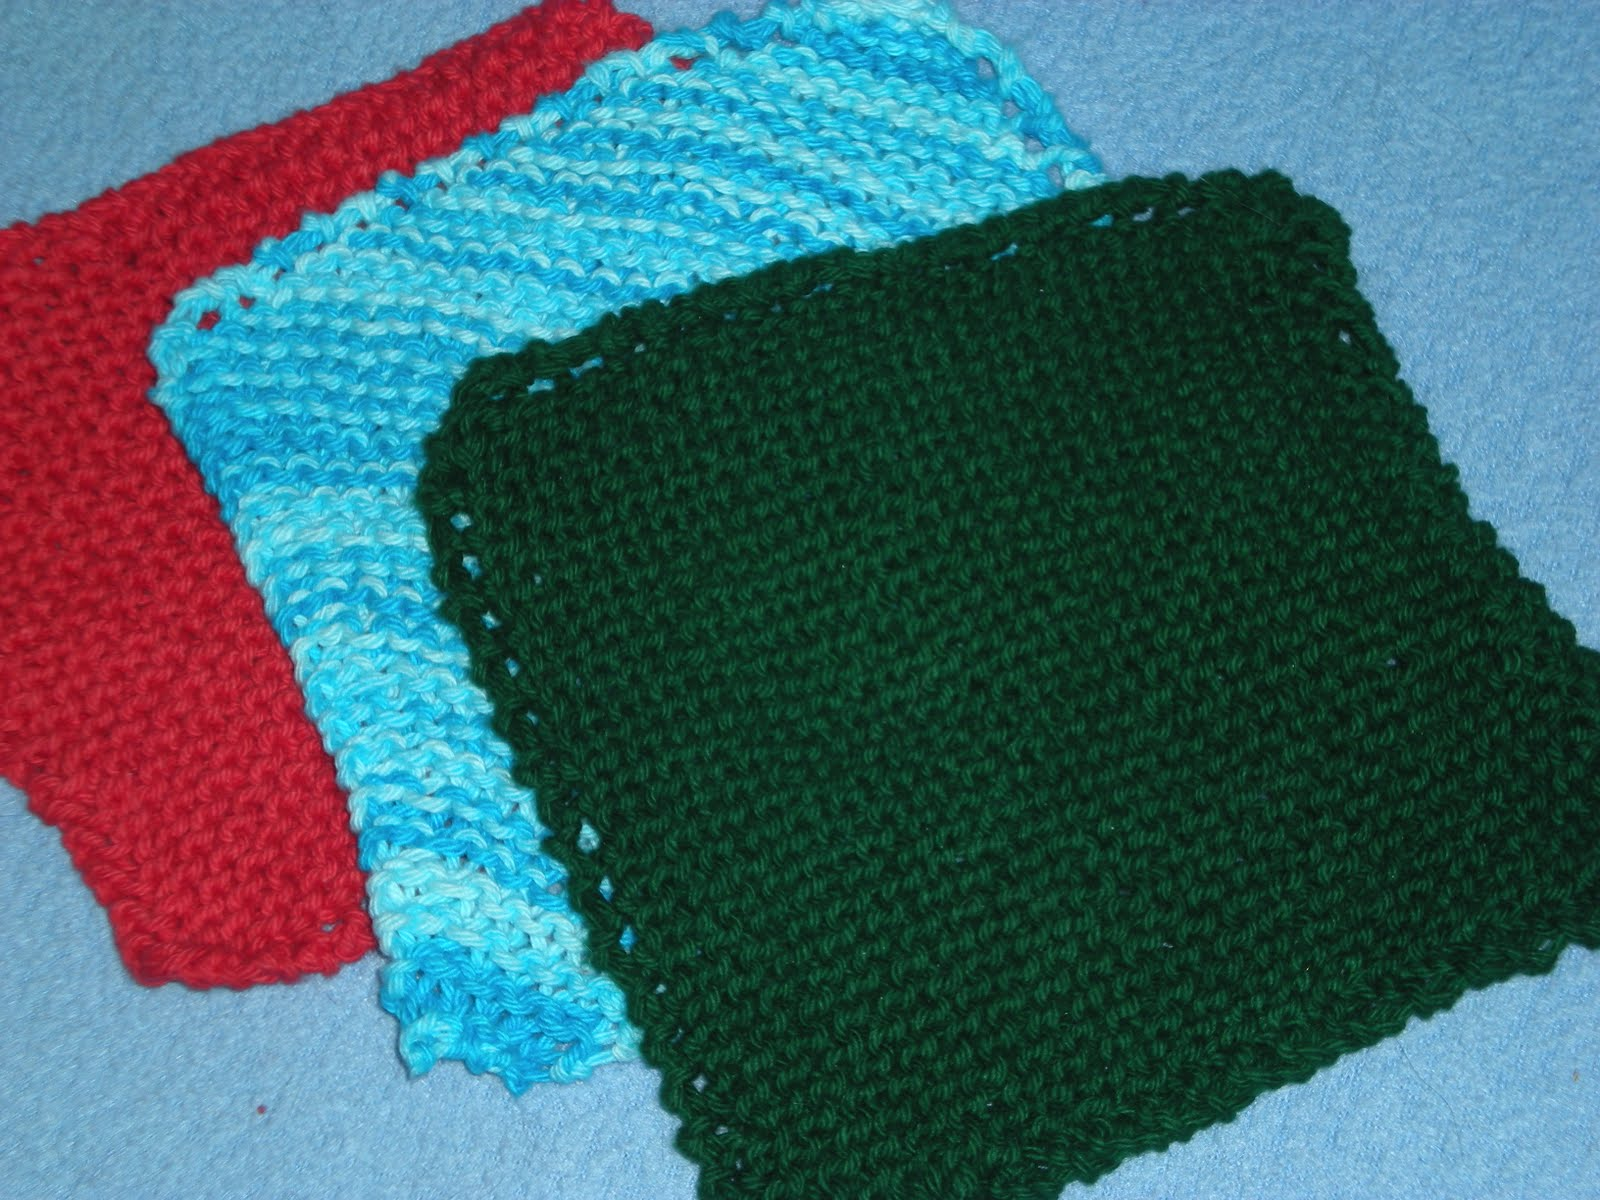 Knit Patterns For Dishcloths Free : Secret Of The Forest: Free Pattern: Knitted Dishcloth